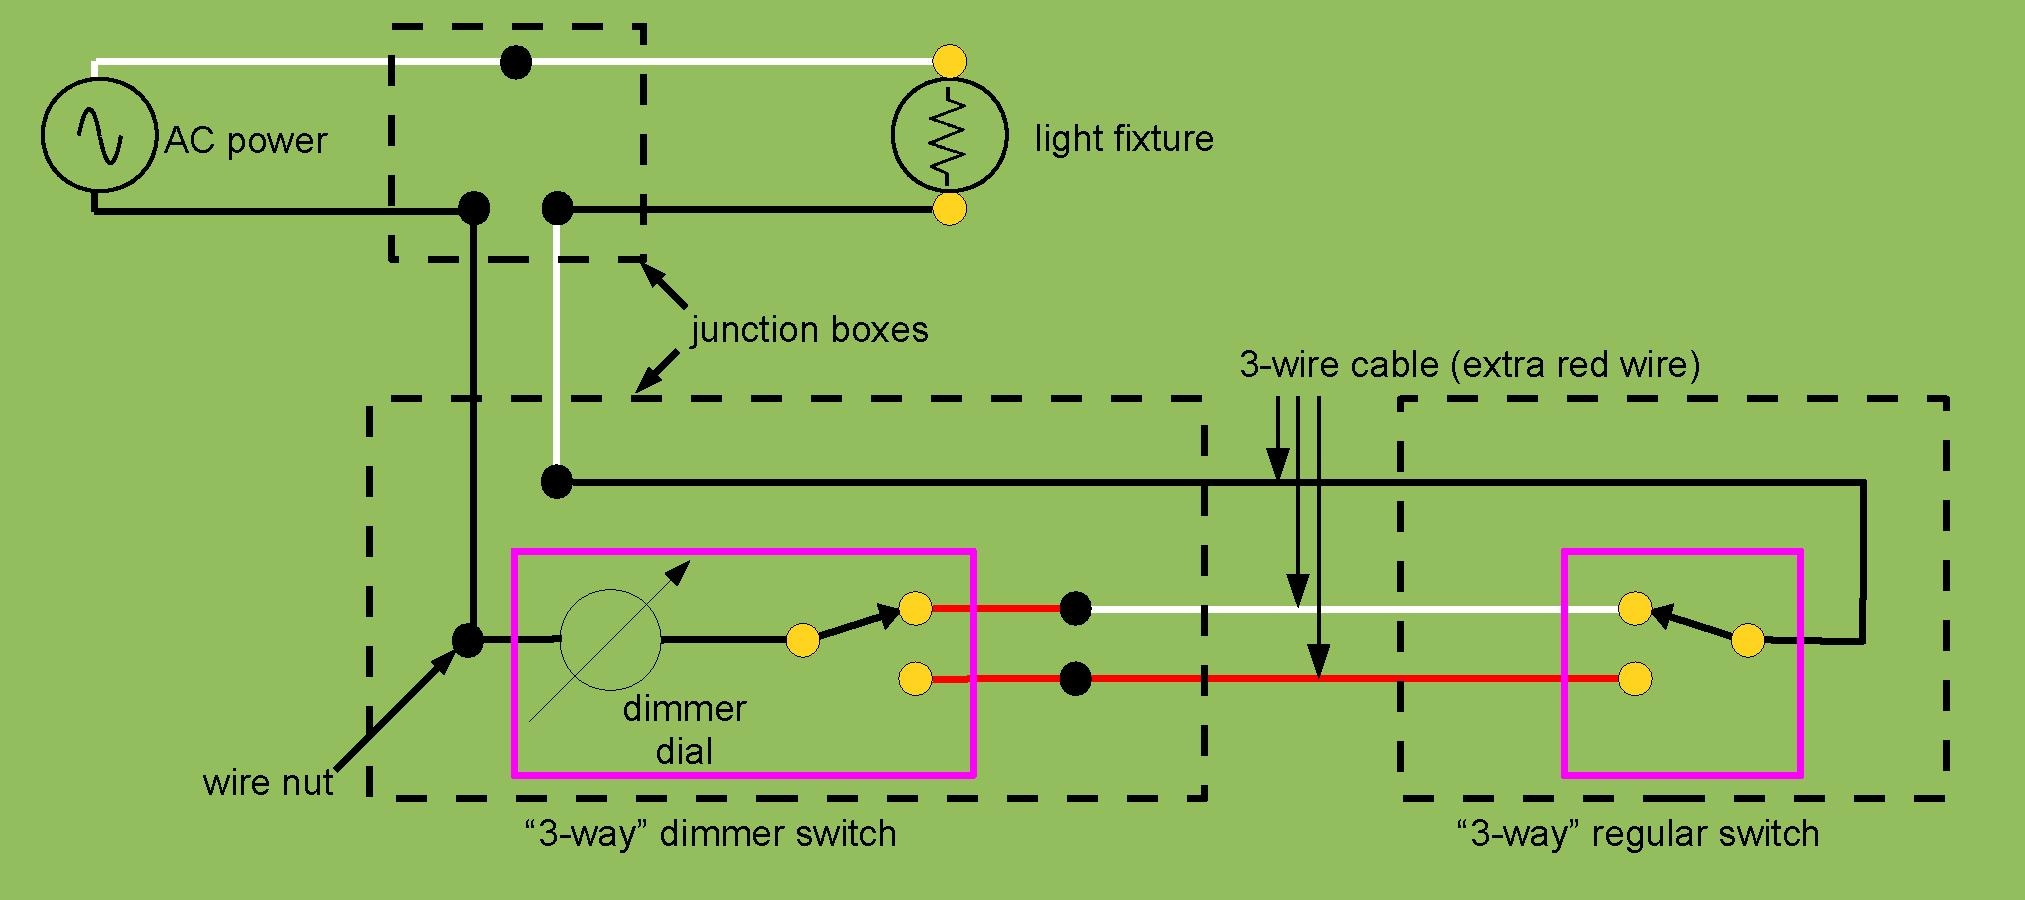 wiring diagram for a two way dimmer switch 0 10 volt file 3 pdf wikimedia commons